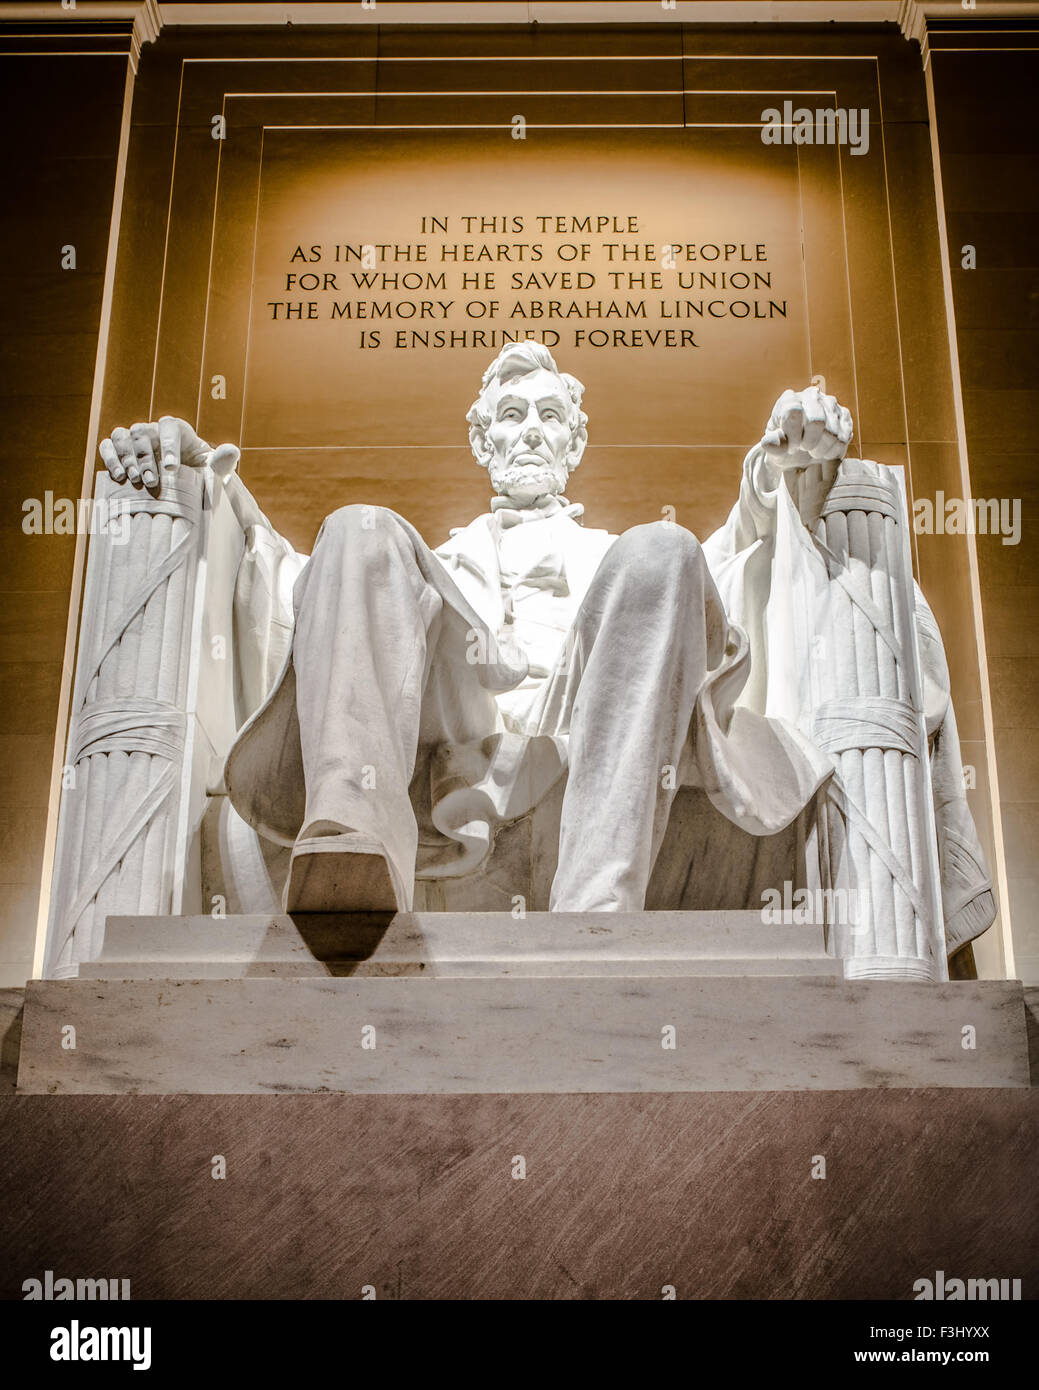 Lincoln Memorial statue of Abraham Lincoln seen at night - Stock Image